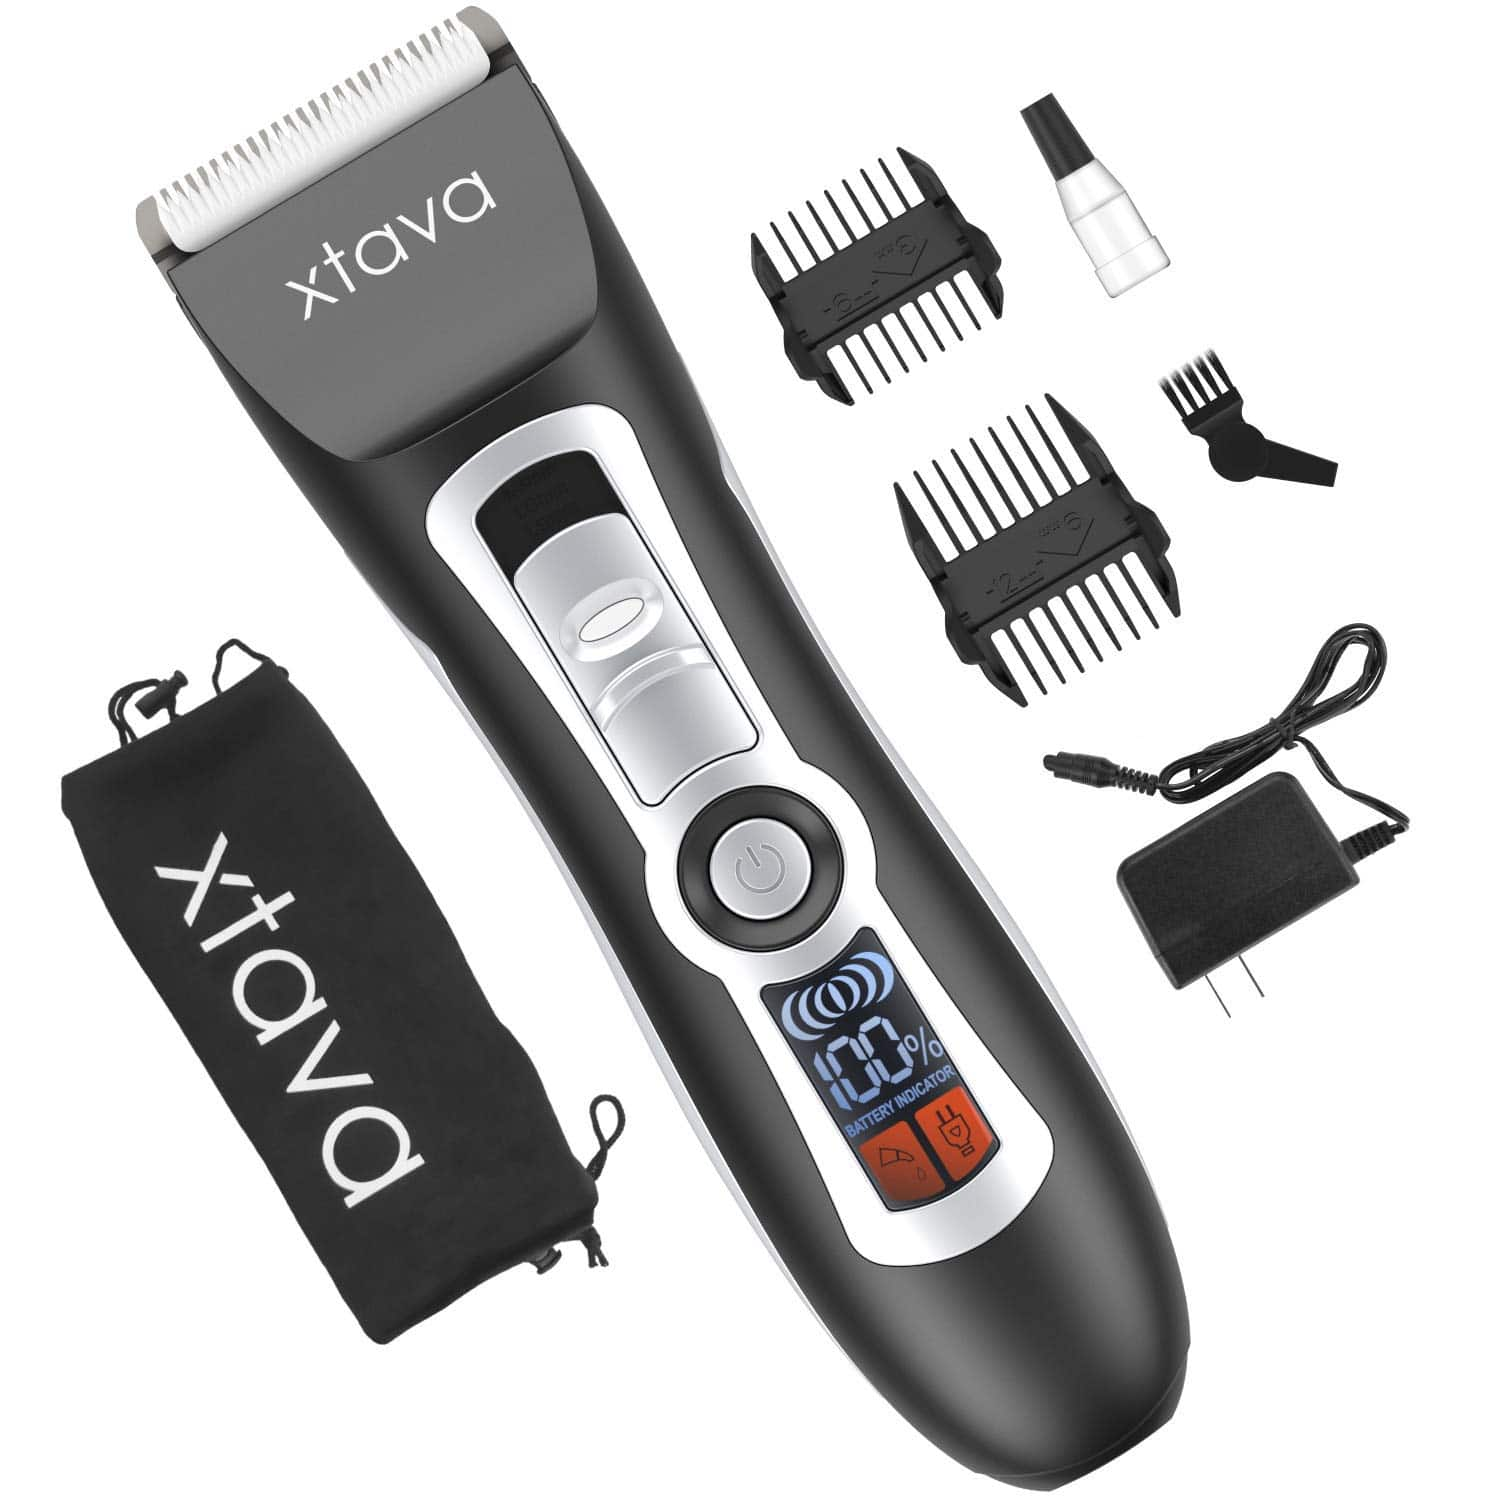 xtavas-pro-cordless-hair-clippers